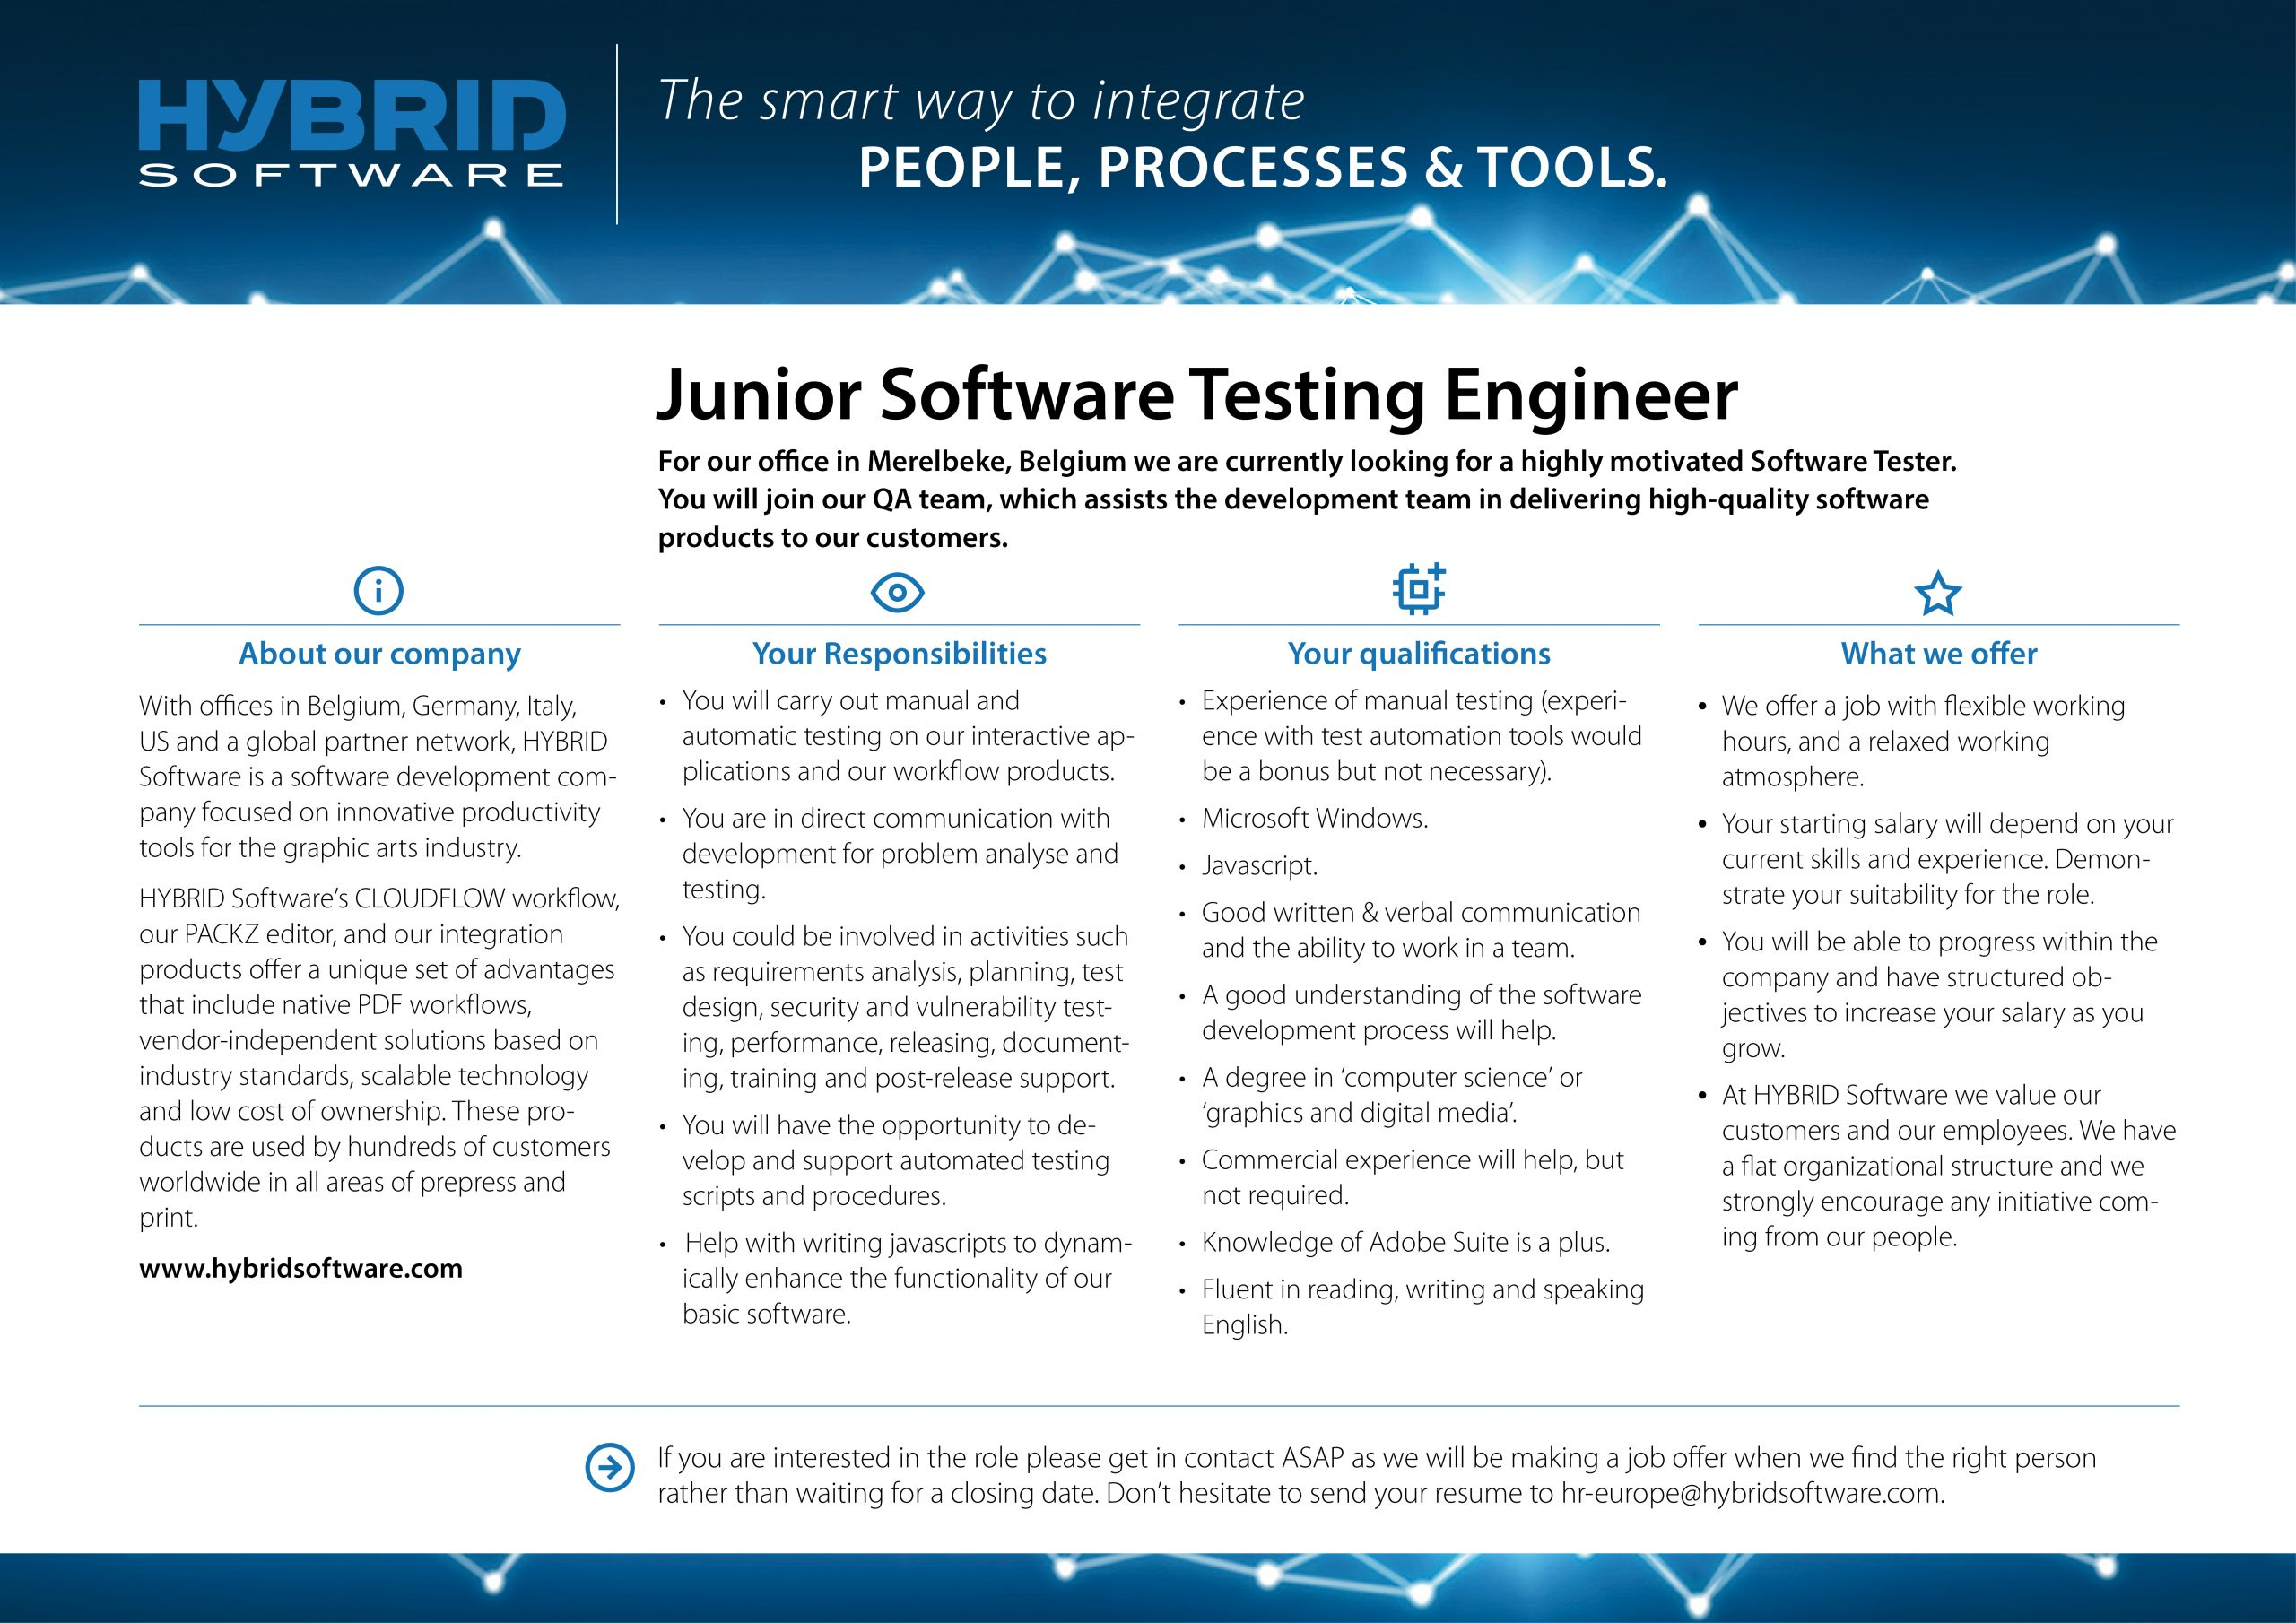 HYBRID Software Junior Software Testing Engineer